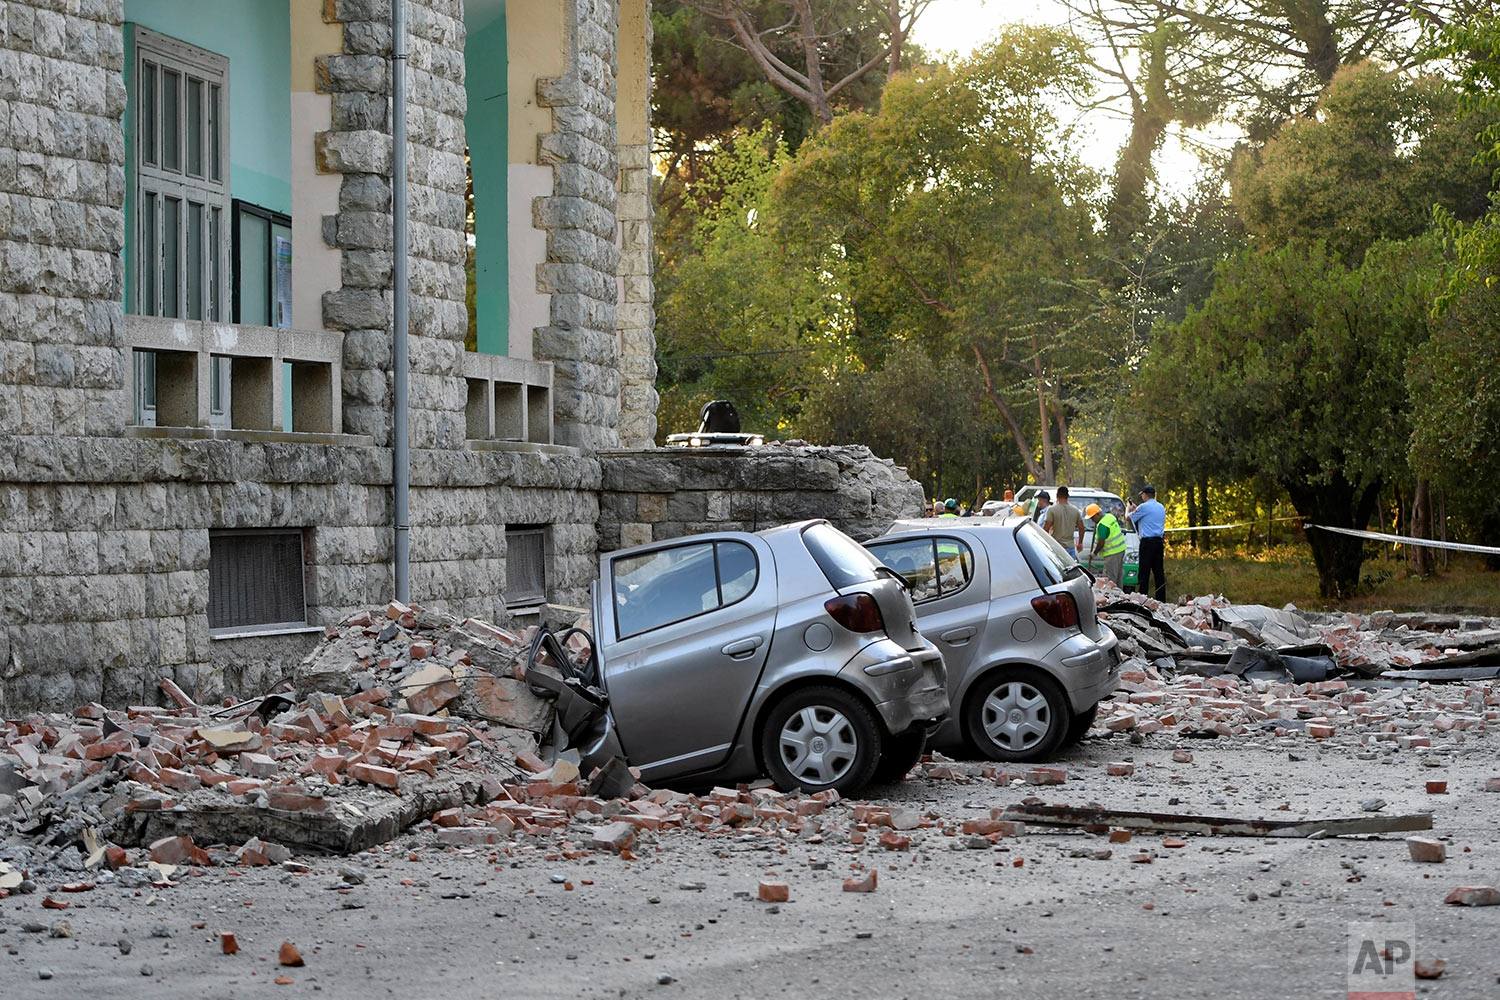 Damaged cars sit outside the Faculty of Geology building after an earthquake in Tirana, Saturday, Sept. 21, 2019. Albania's government and news reports say an earthquake with a preliminary magnitude of 5.8 shook in the country's west and injured at least two people. (AP Photo/Hektor Pustina)